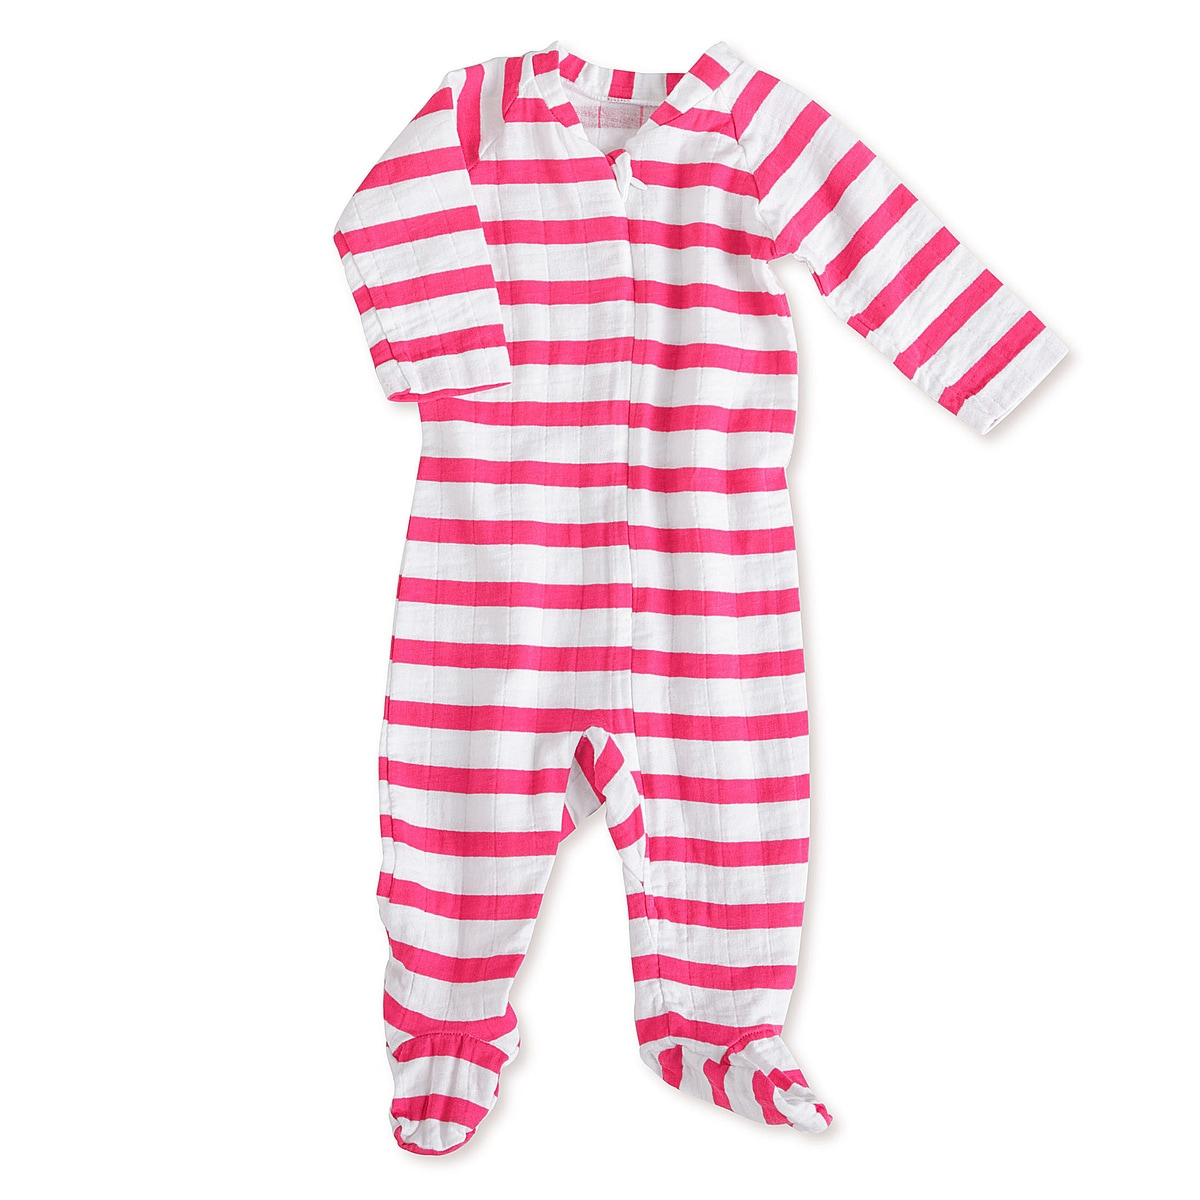 aden + anais Girls 3-6 Months Pink Blazer Stripe Muslin Long-Sleeve Zip One Piece